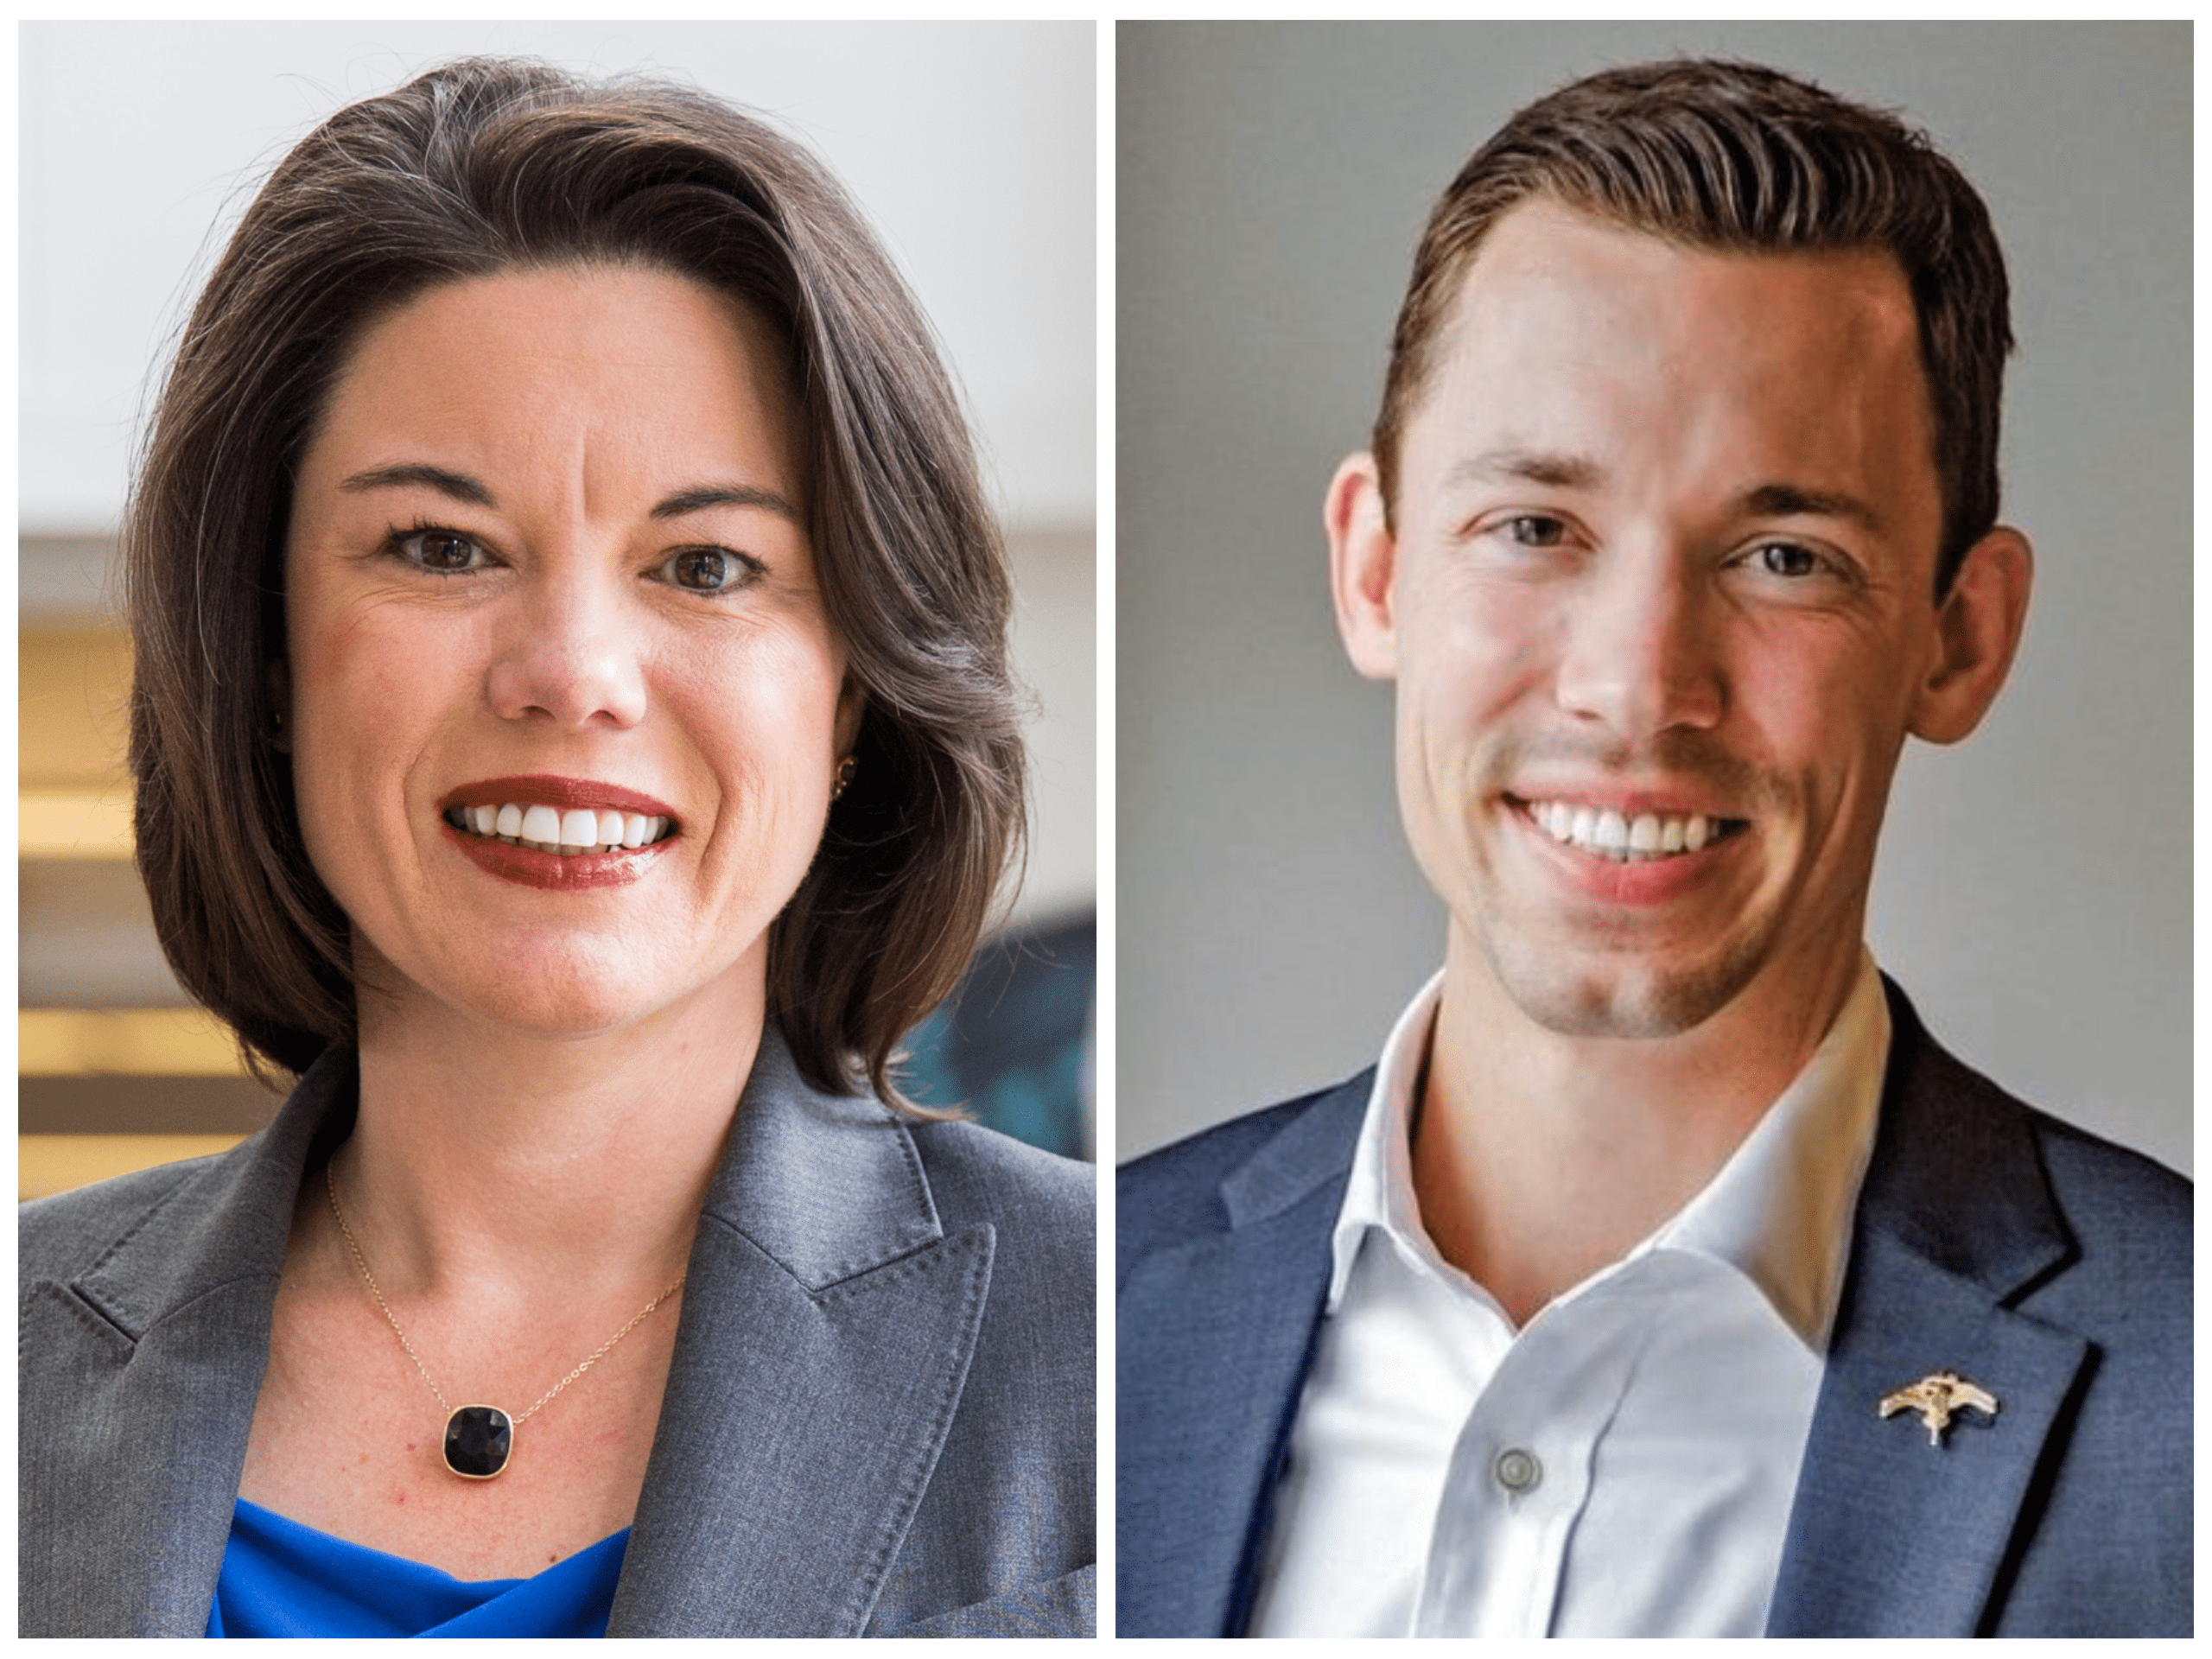 Voter guide: Where the 2nd District candidates stand on the issues